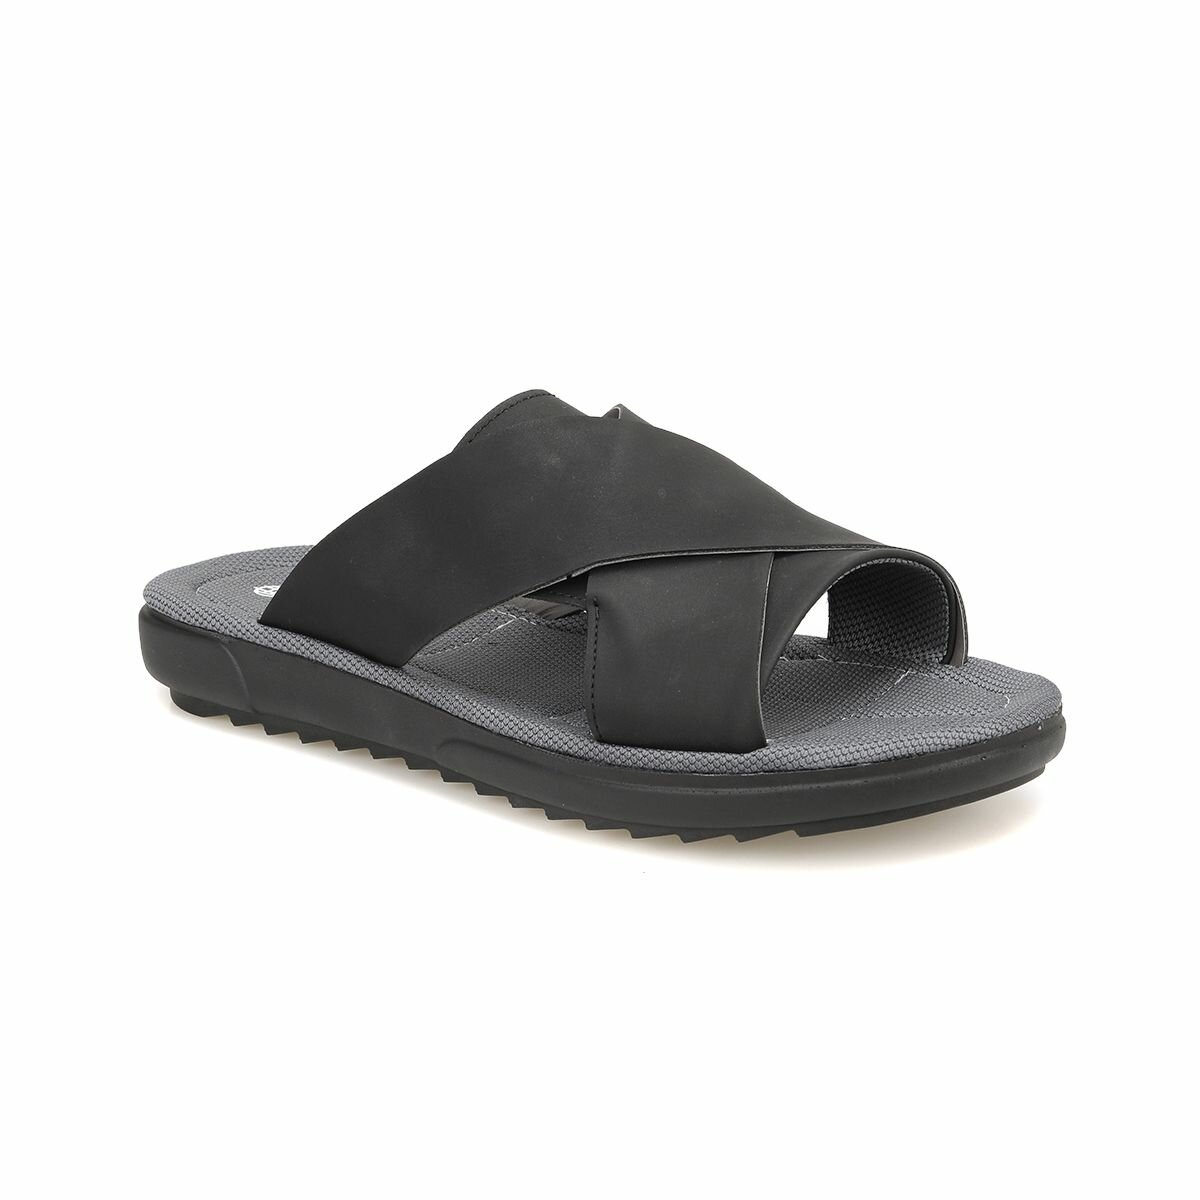 FLO CMPR-2 Black Male Sandals Panama Club